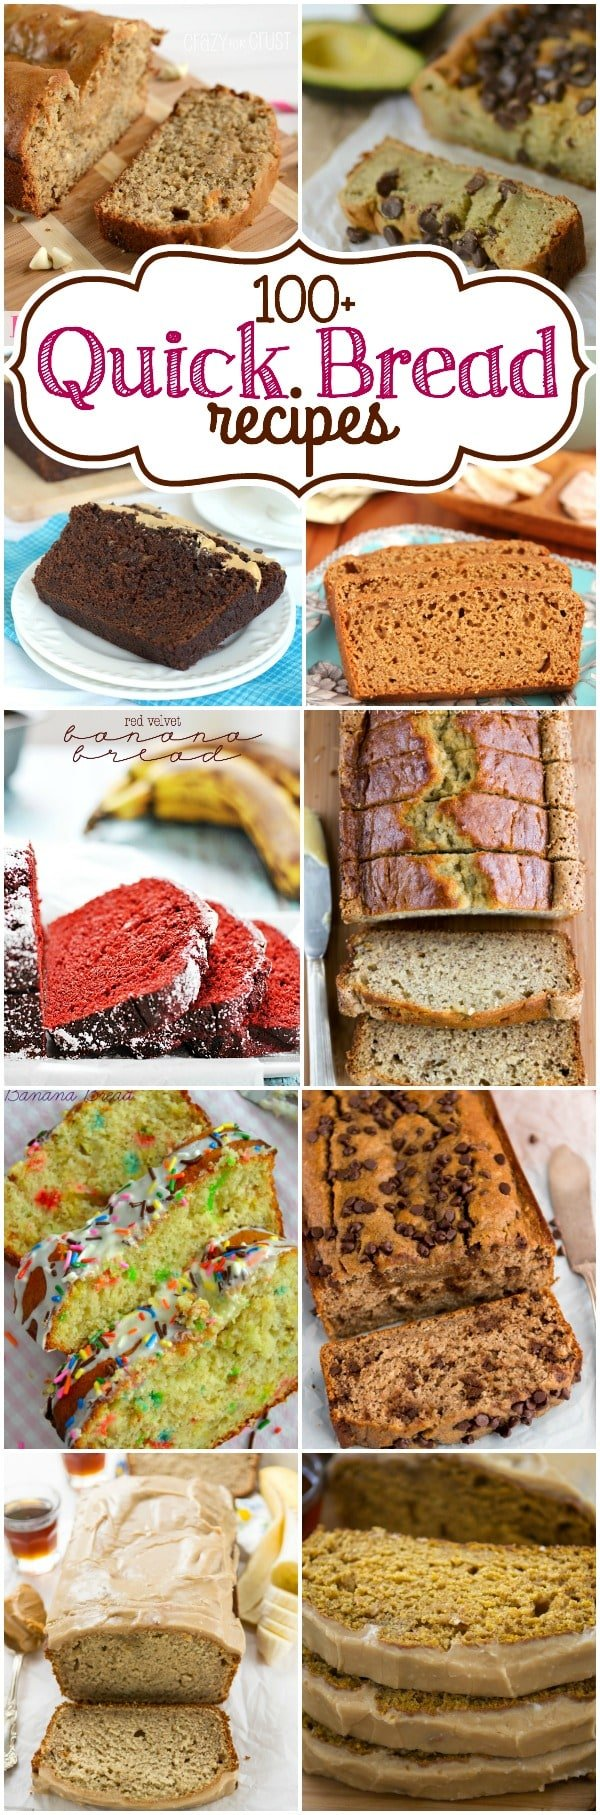 Over 100 quick bread recipes crazy for crust over 100 quick bread recipes from your favorite bloggers find banana pumpkin chocolate forumfinder Choice Image